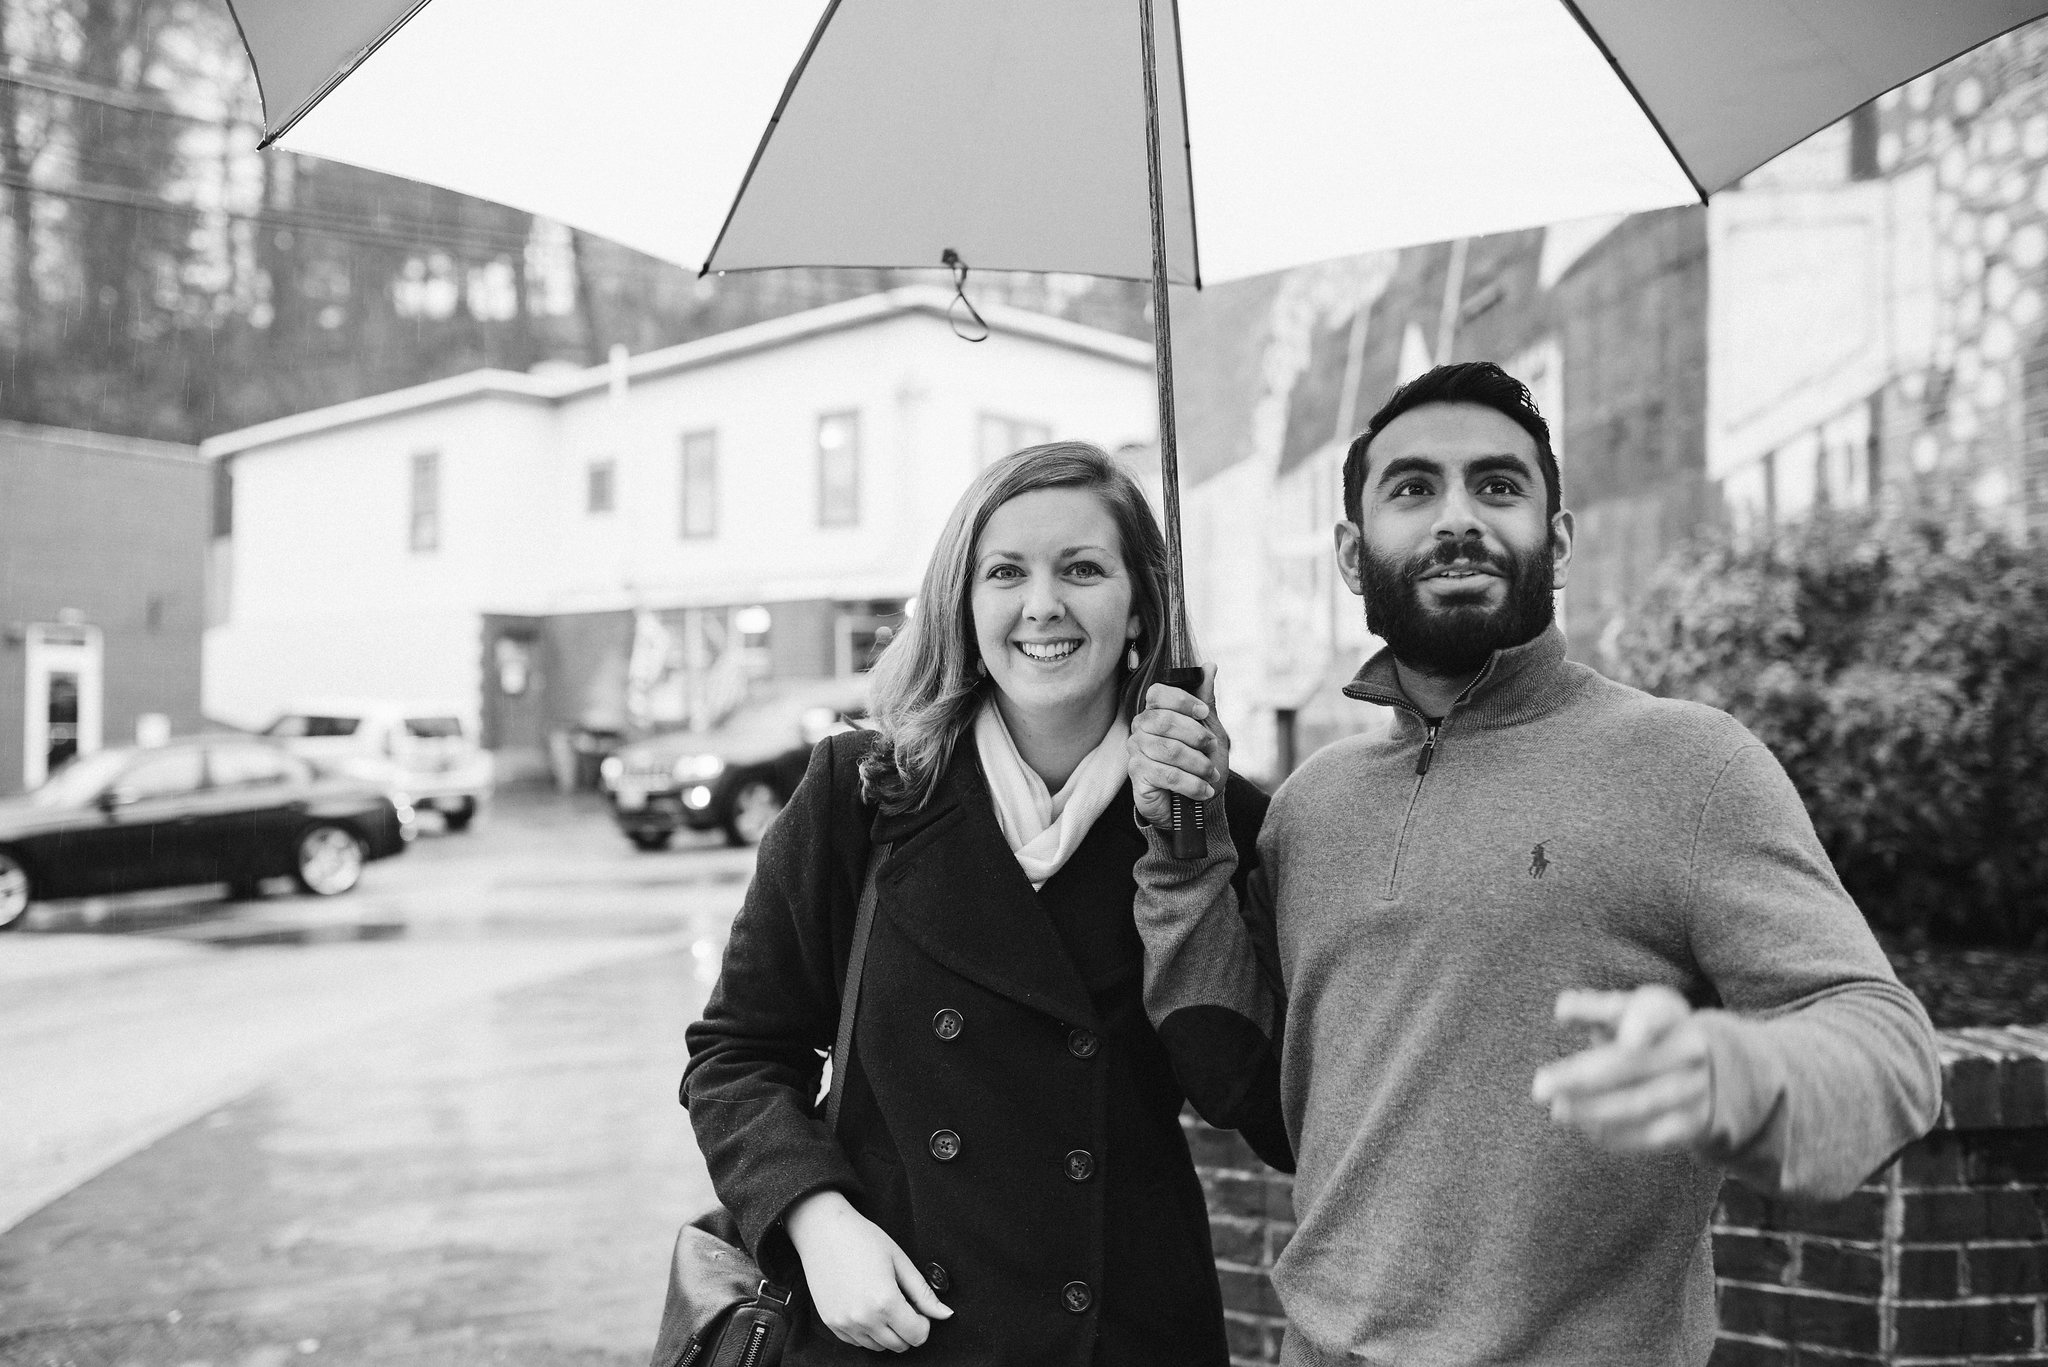 Engagement Photos, Rainy, Ellicott City, Maryland Wedding Photographer, Winter, Overhills Mansion, Indian American, Historical, Classic, Traditional, Outdoor, Black and White Photo